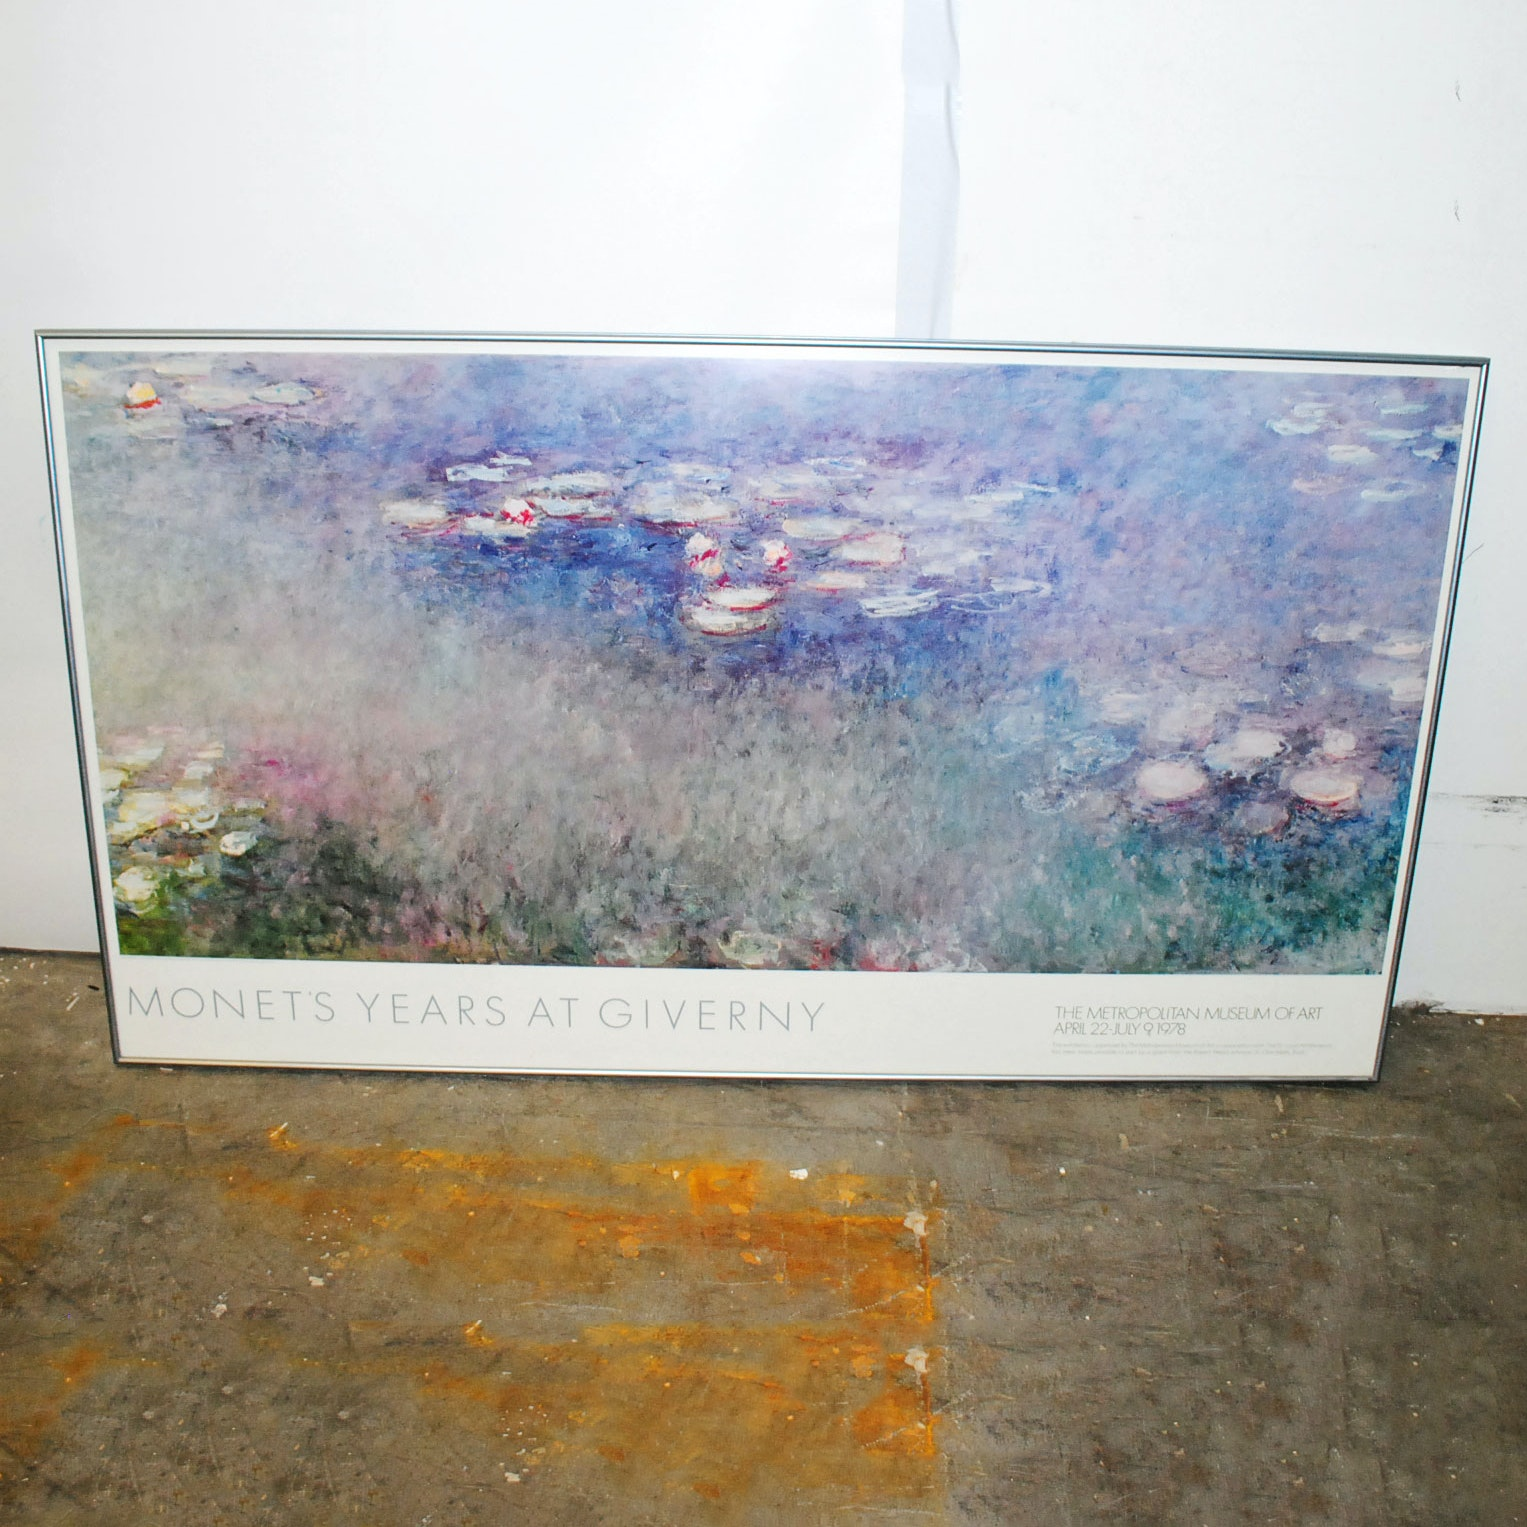 "Offset Lithographic Print of ""Monet's Years At Giverny"" 1978 Exhibition Poster"